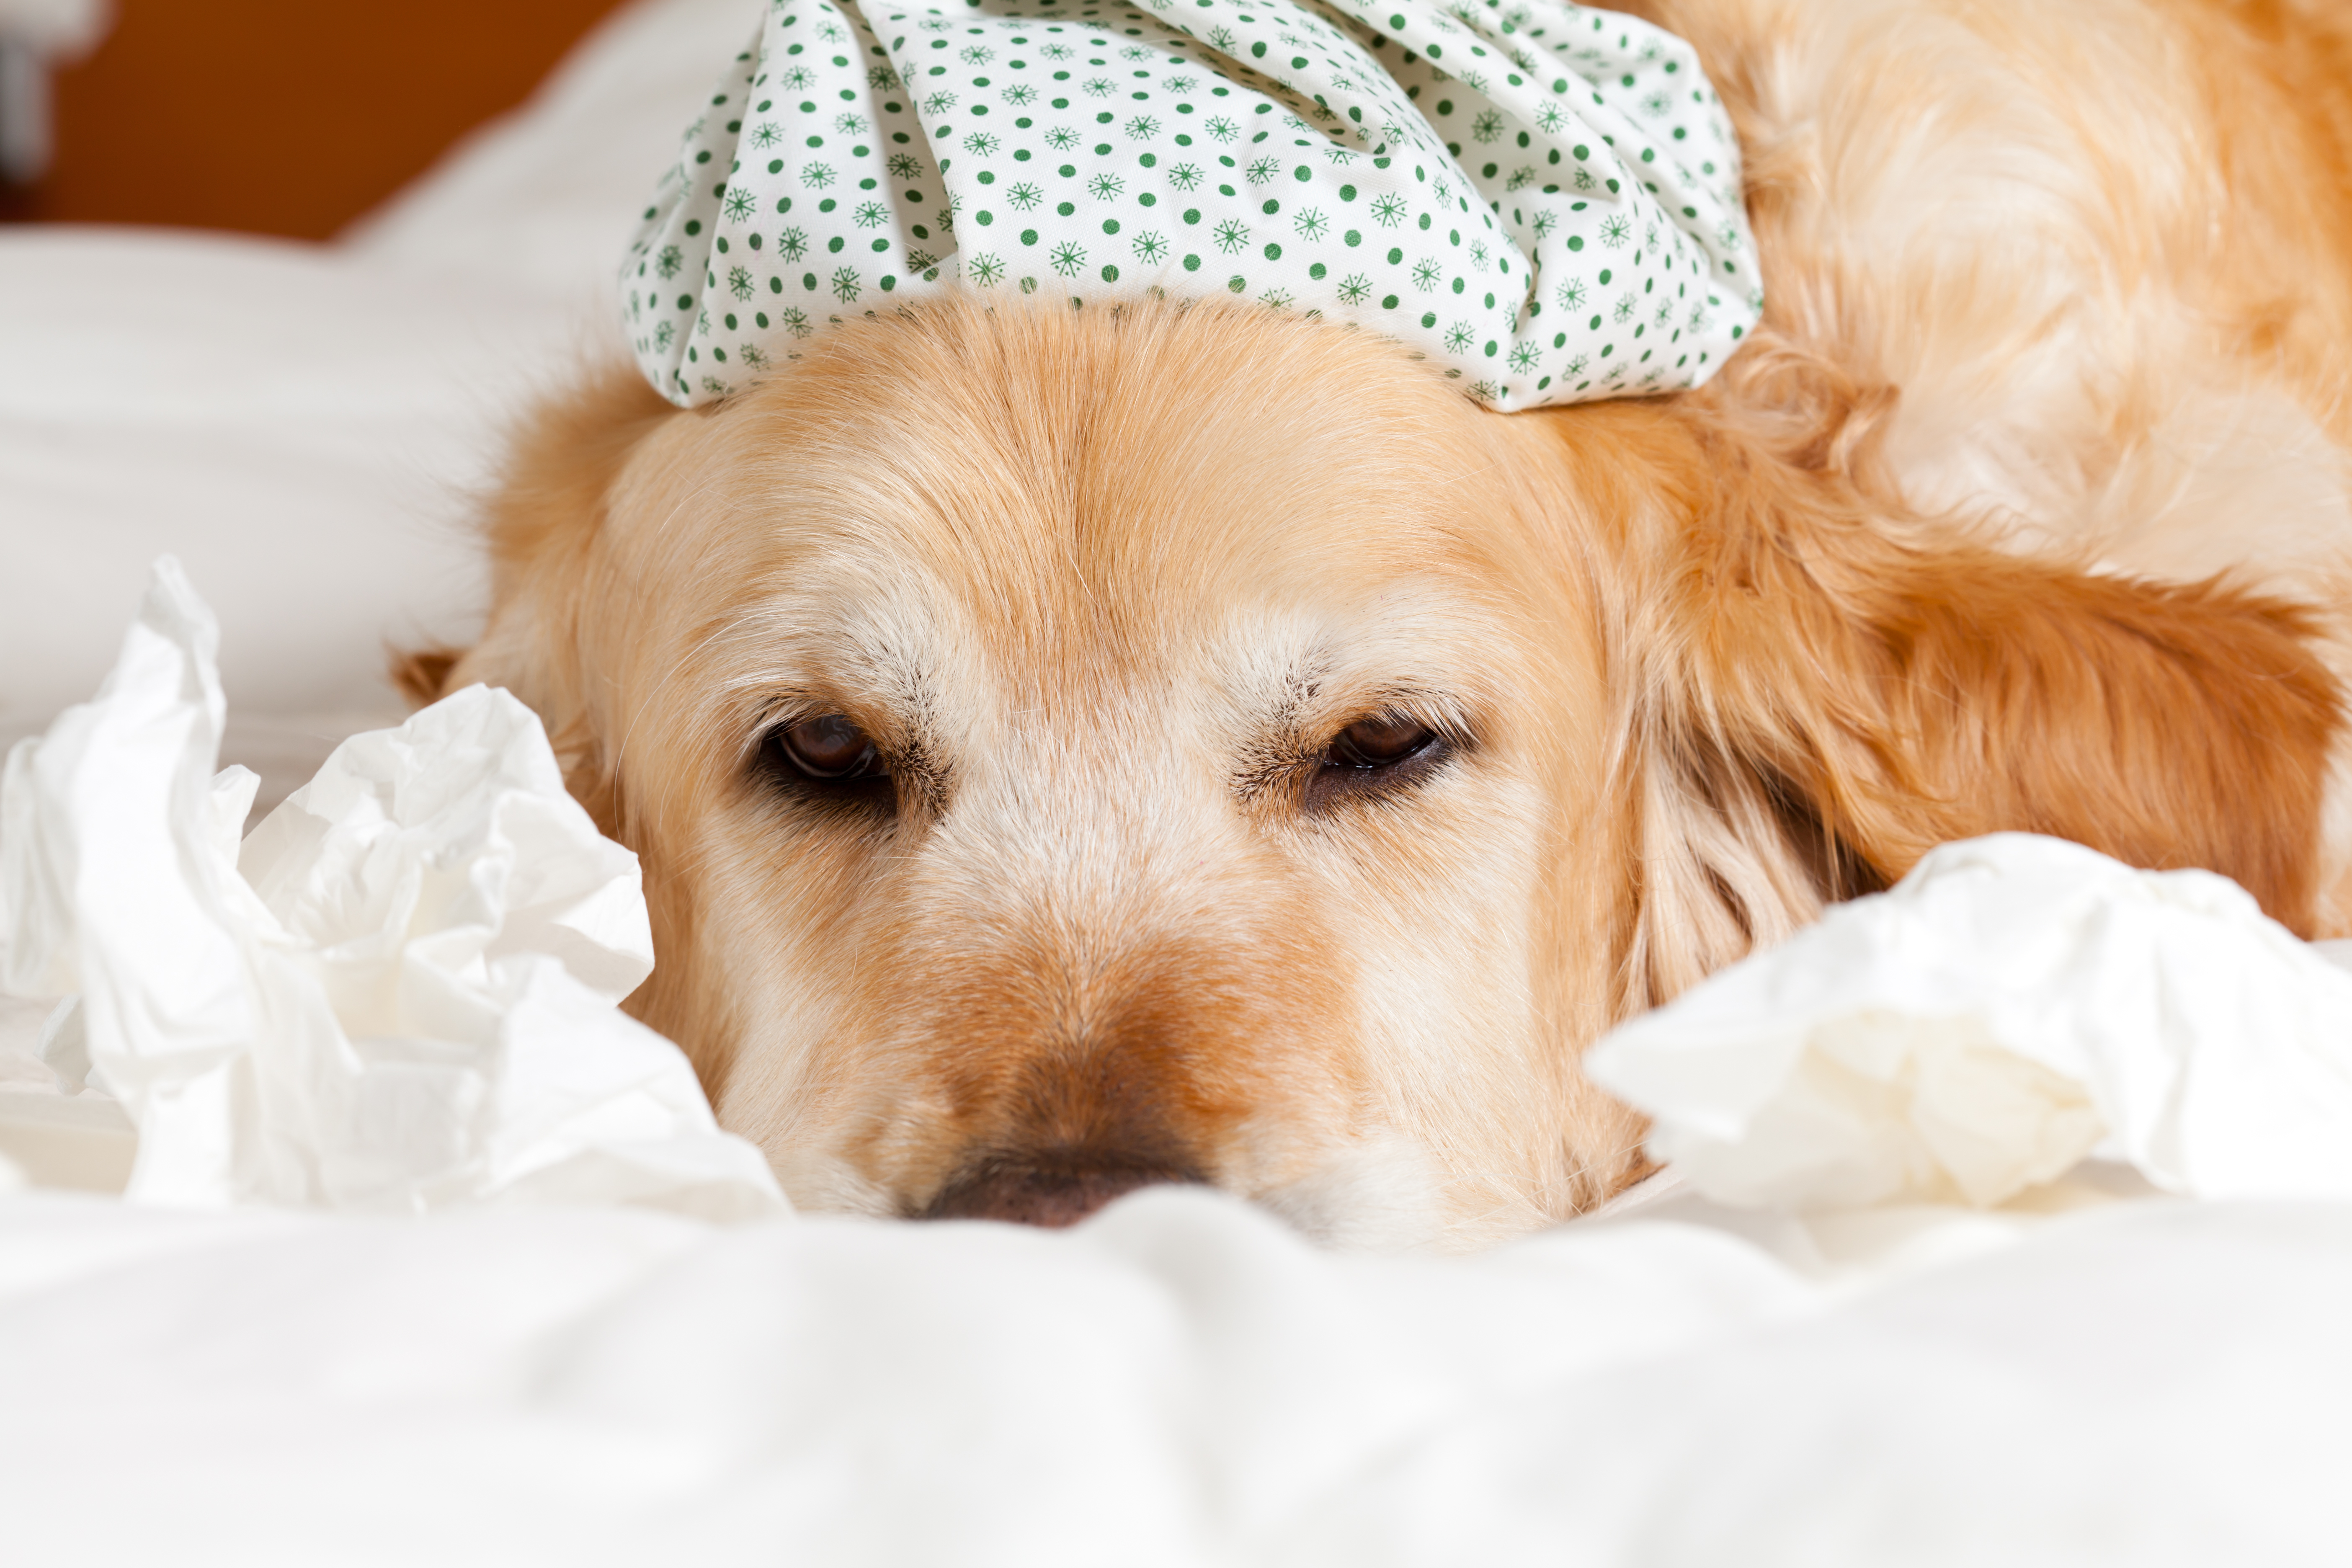 Spreading – Canine Influenza | New Dog Flu Strain